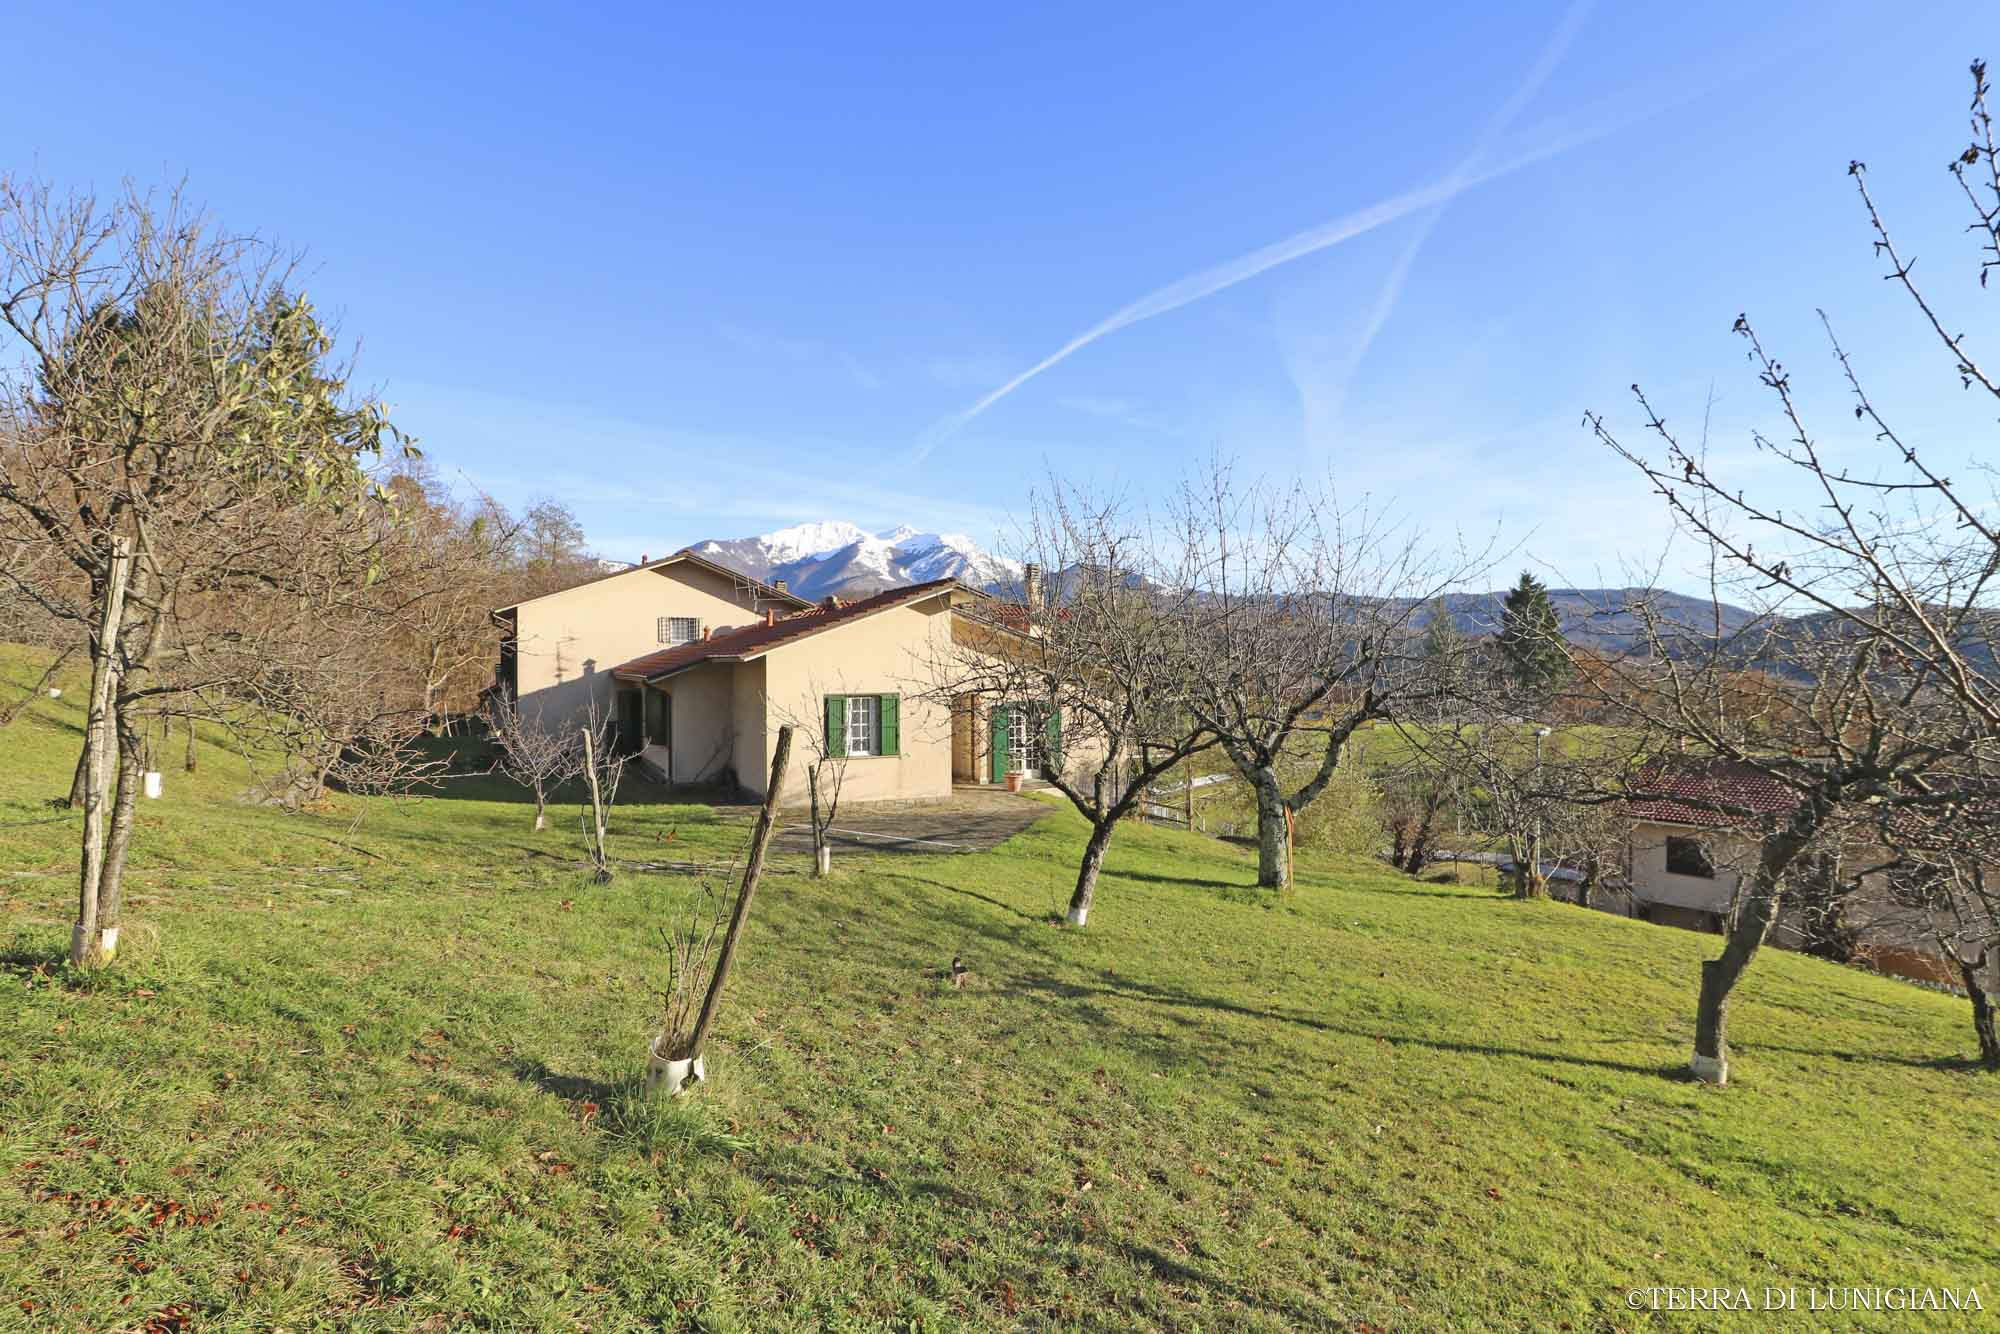 VILLA FIORITA – Detached Villa with Land near the water stream